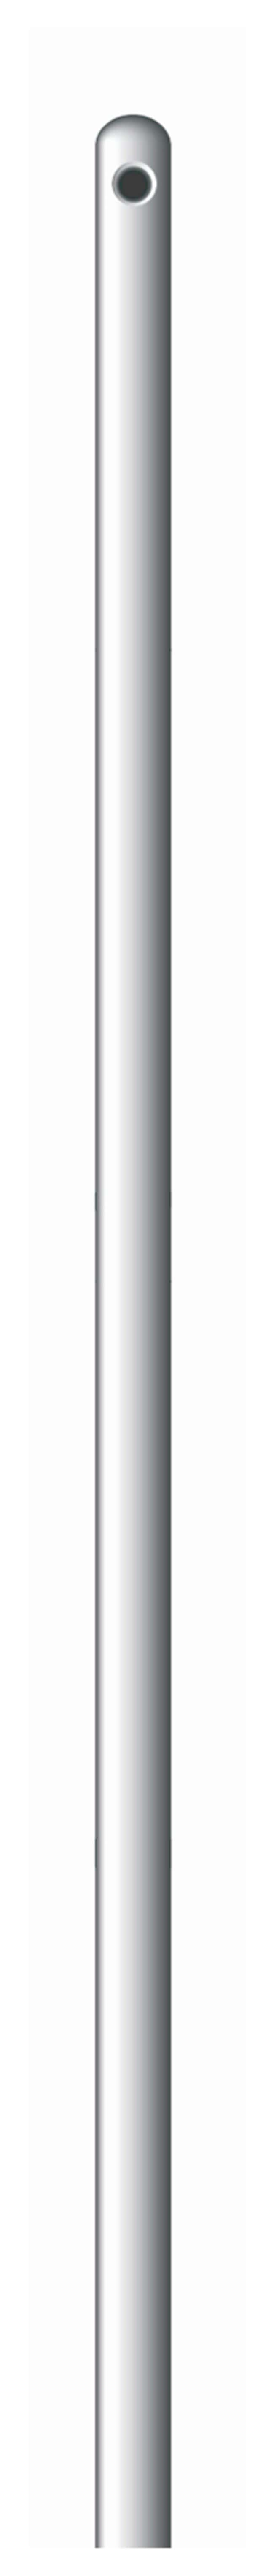 Trajan™Replacement Plungers: Chromatography Syringes Chromatography